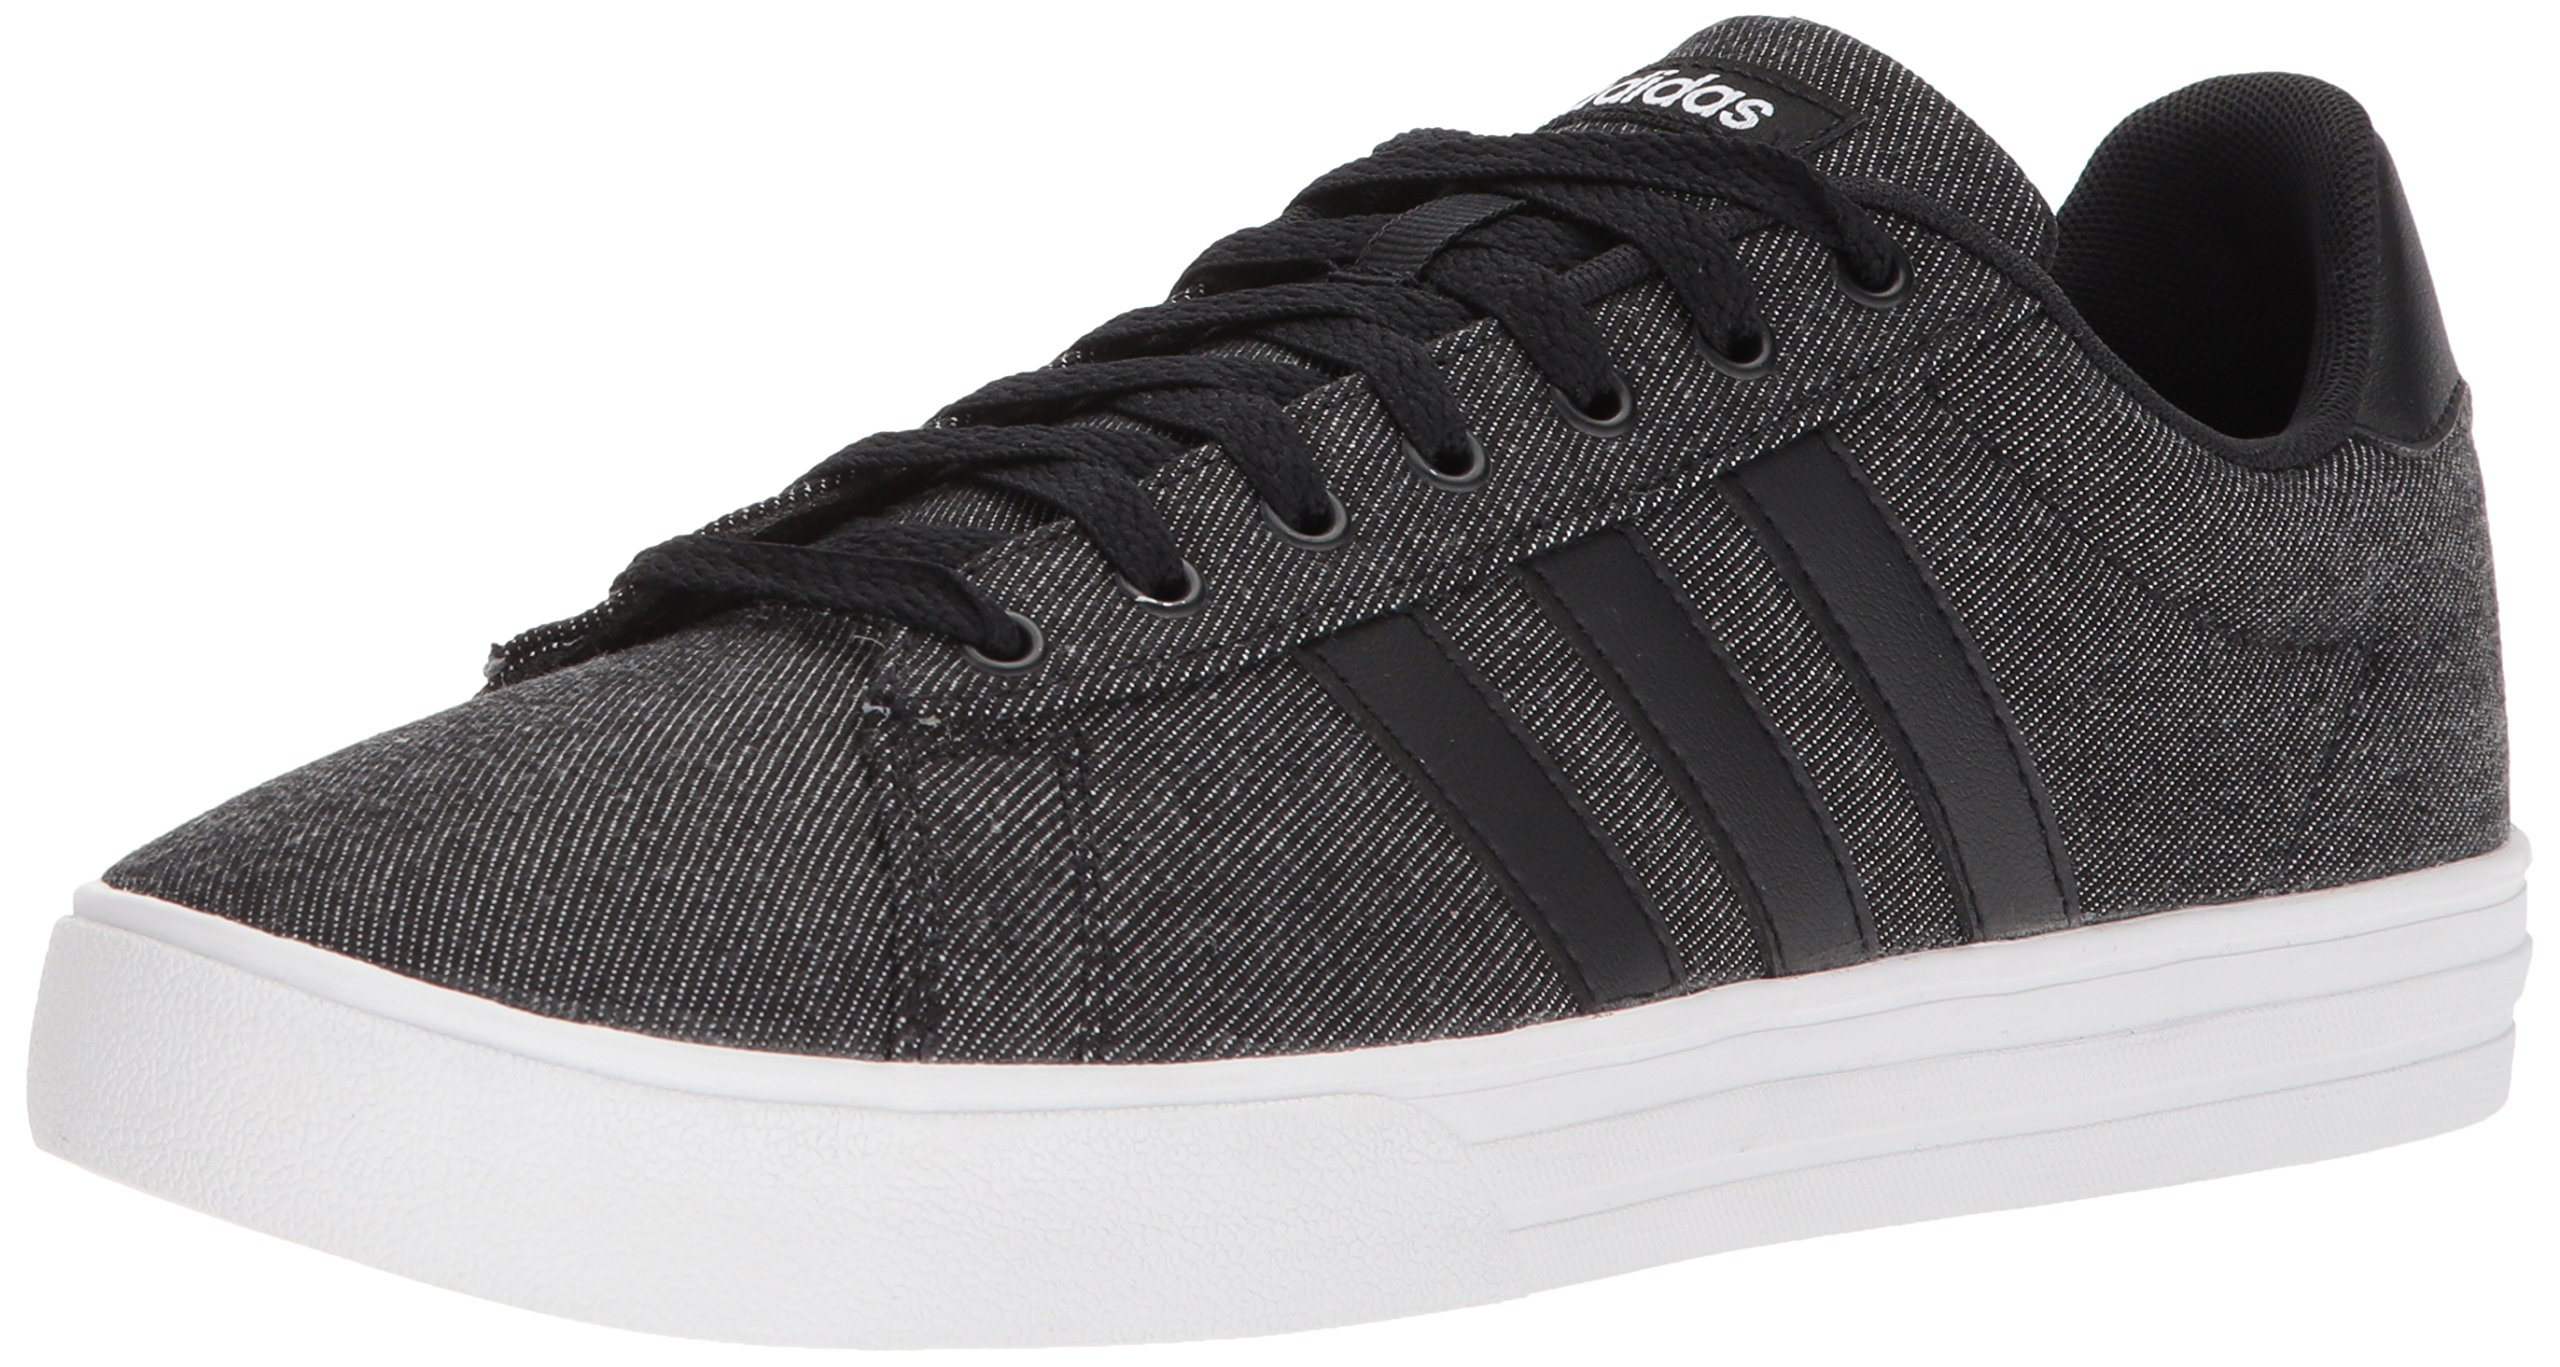 59eec375763d Galleon - Adidas Men s Daily 2.0 Sneaker